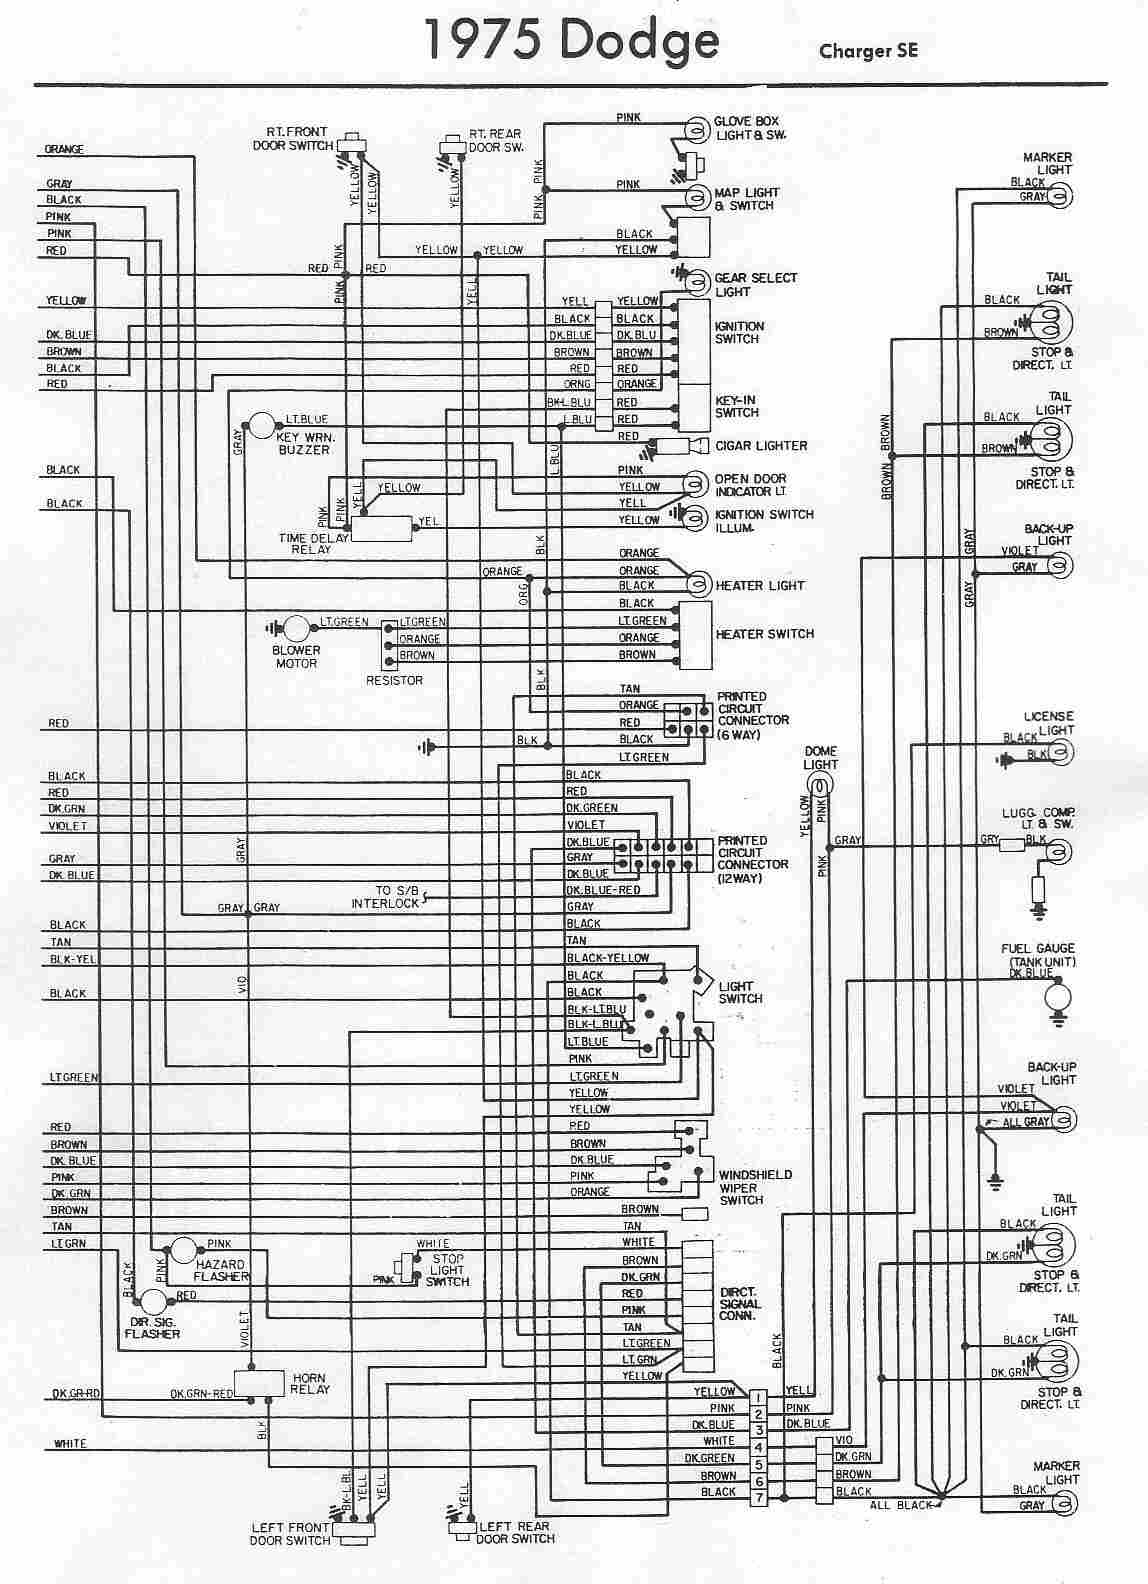 2013 dodge charger fuse diagram